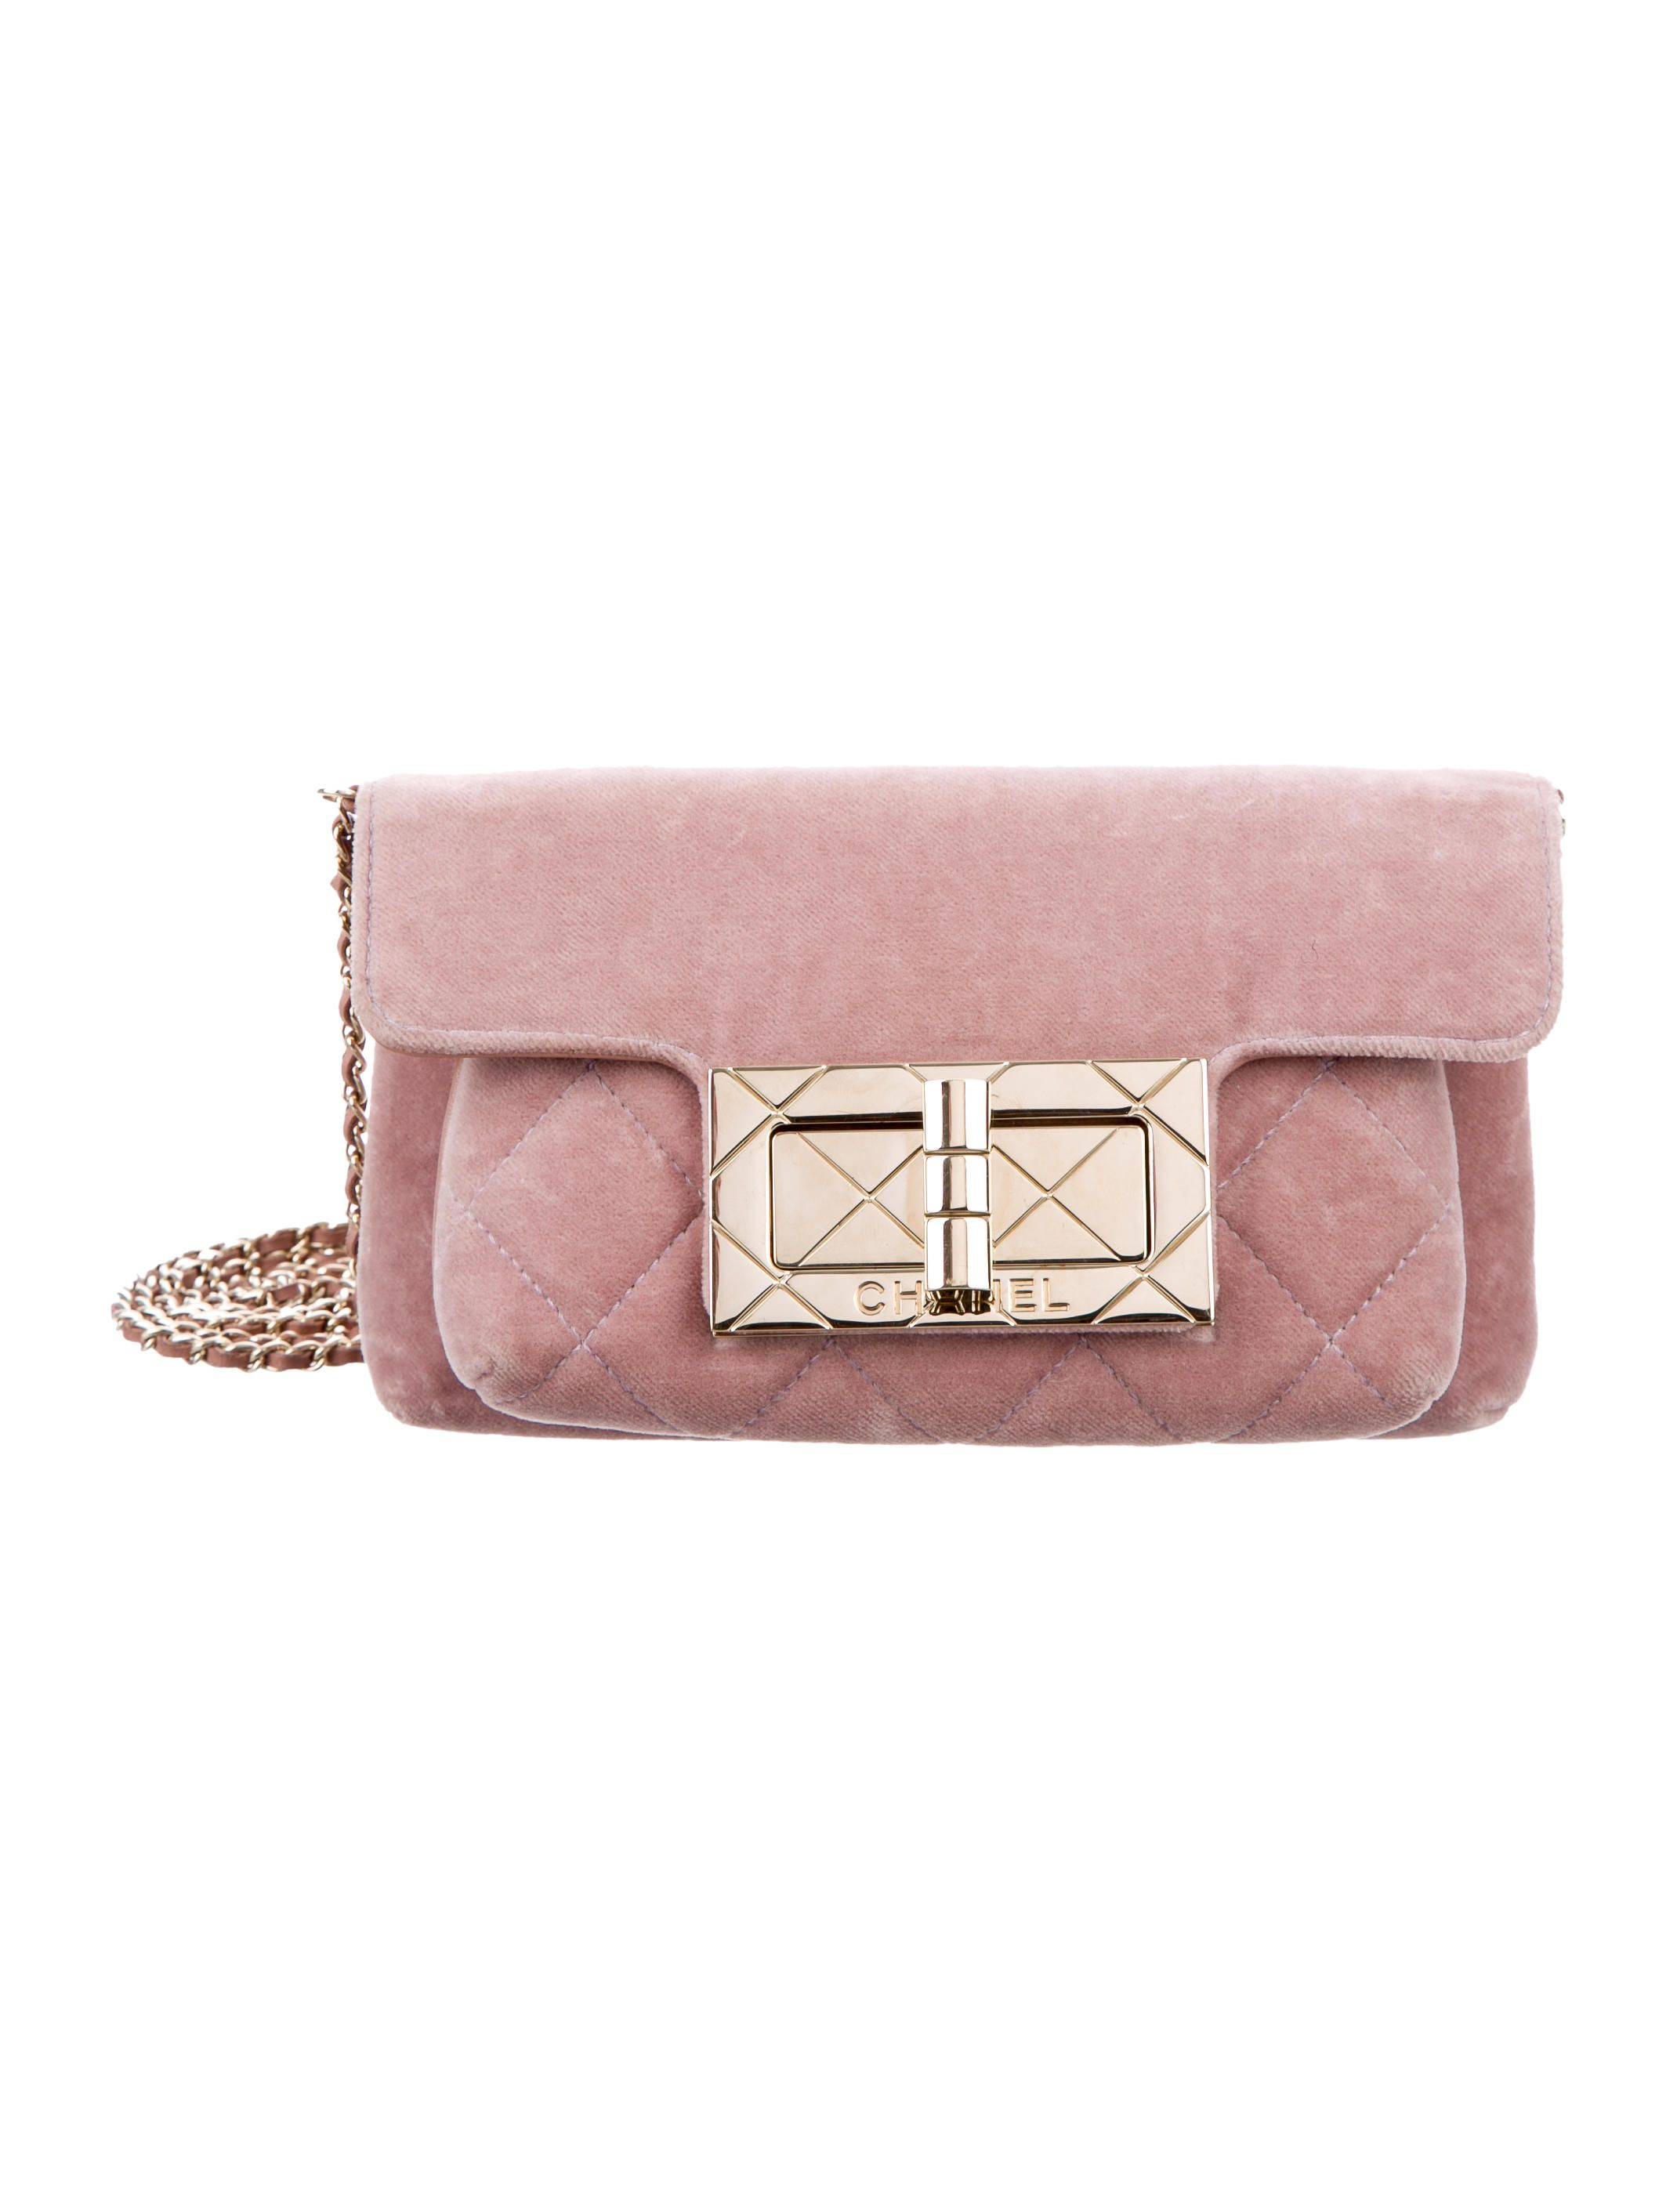 f12a74a49443 Pink velvet Chanel Reissue evening bag with gold-tone hardware, single  chain-link